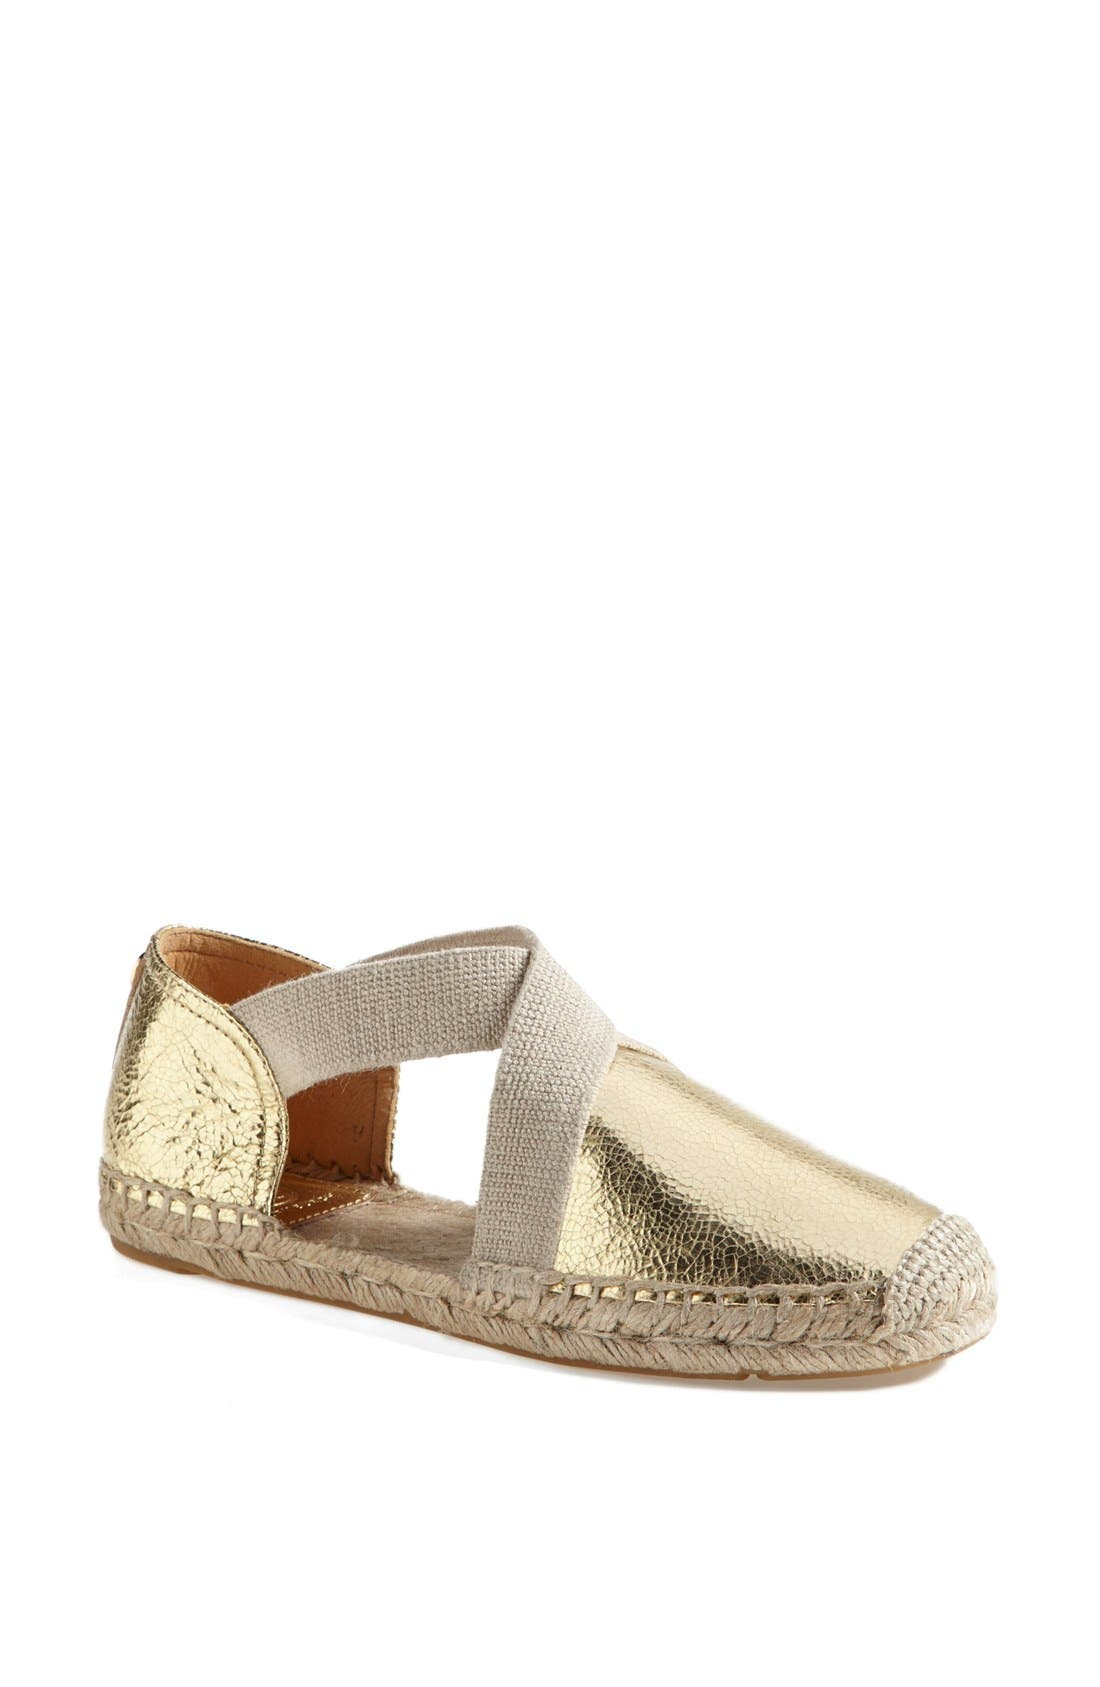 Alternate Image 1 Selected - Tory Burch 'Catalina' Espadrille Flat